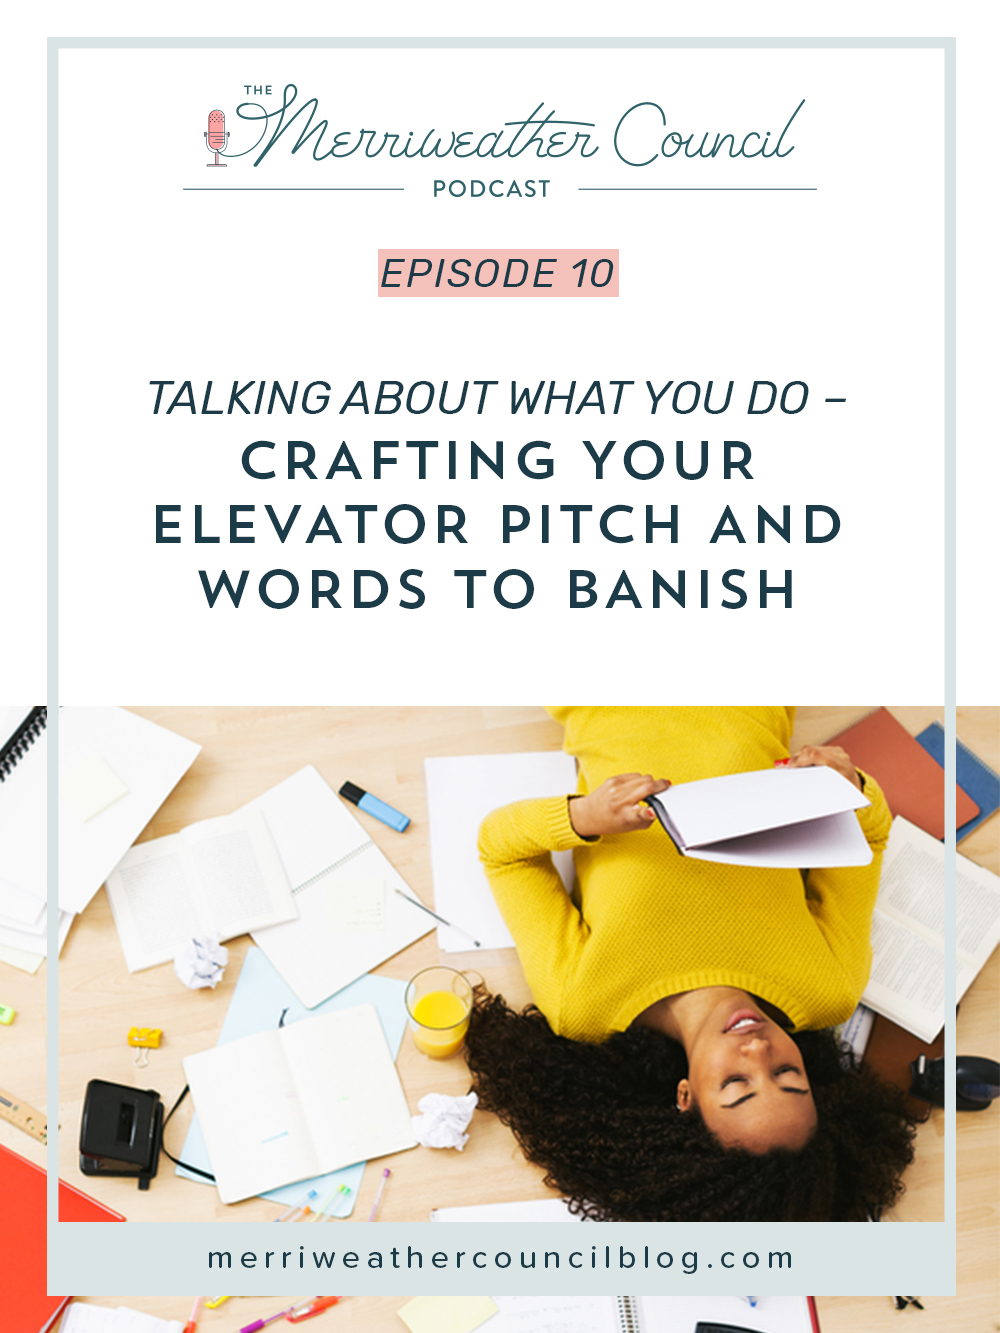 Episode 010: Talking About What you do - Crafting Your Elevator Pitch and Words to Banish | the merriweather council podcast